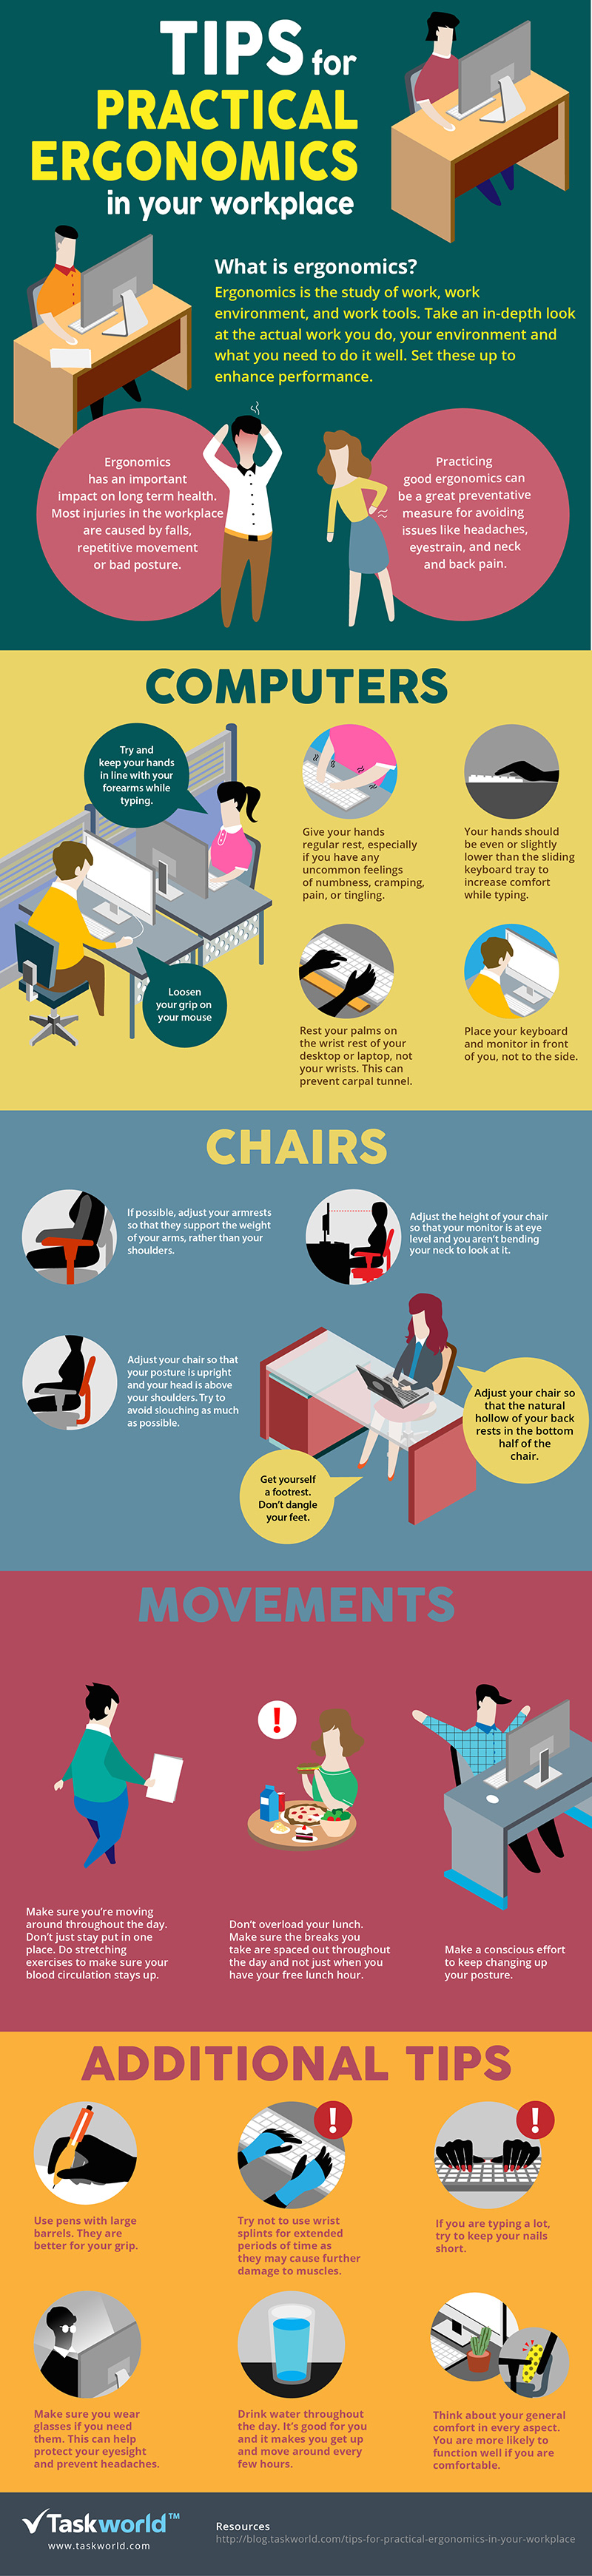 Tips for Practical Ergonomics In Your Workplace